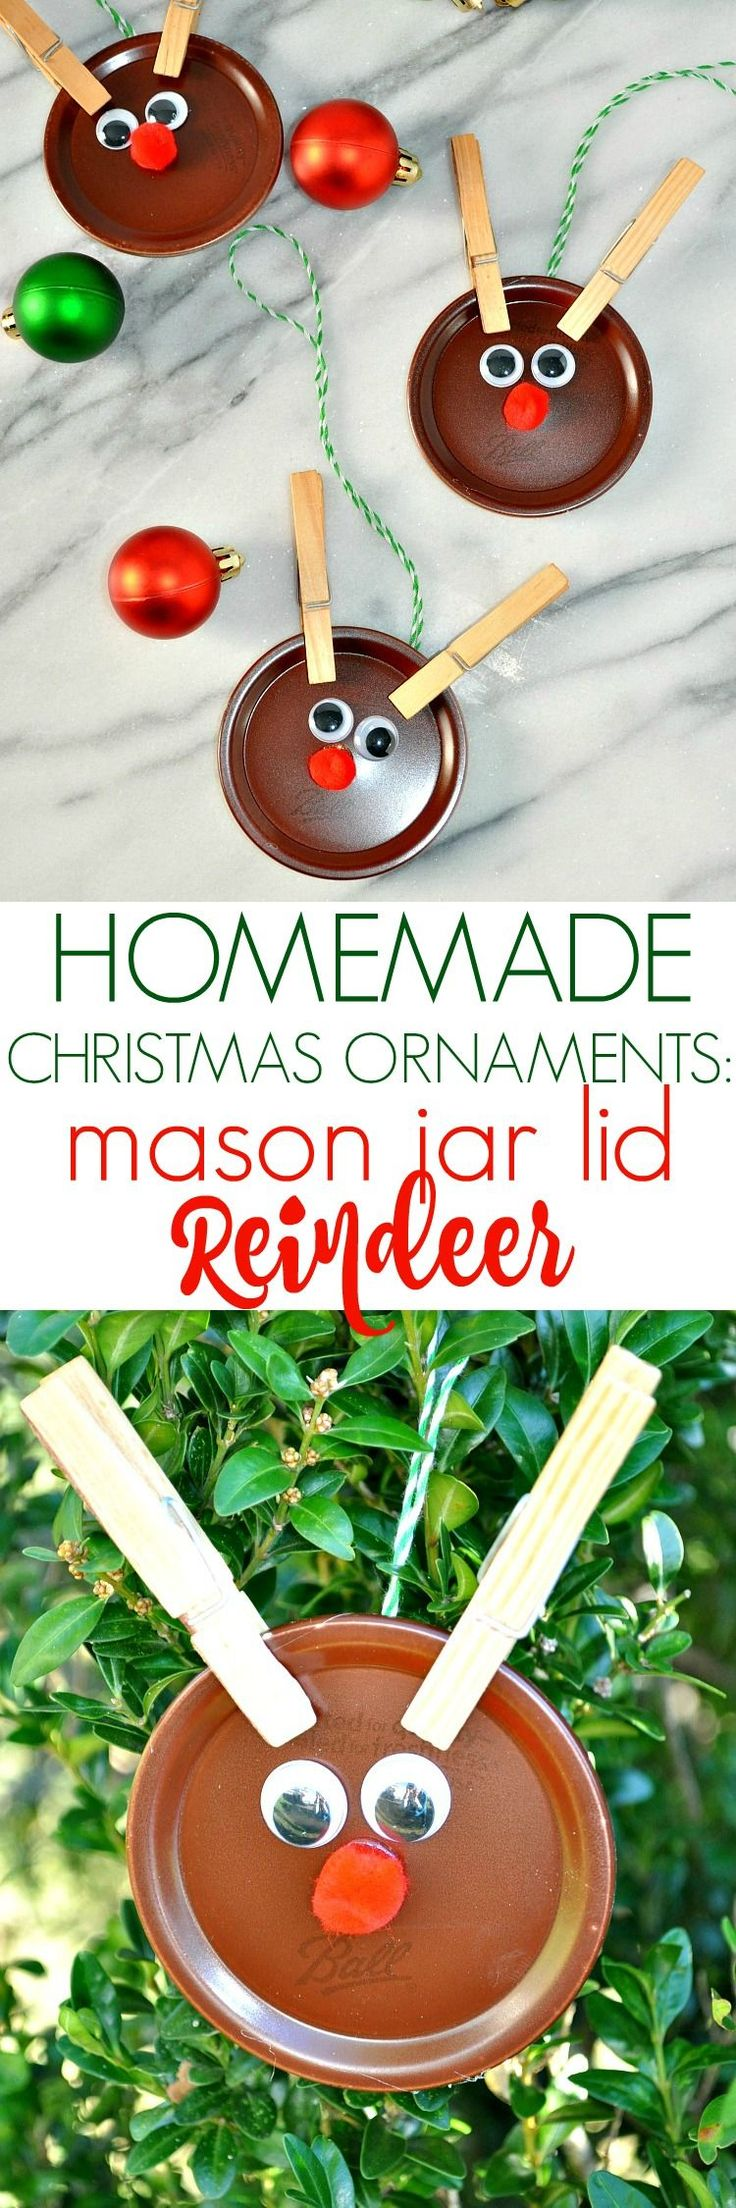 101 handmade christmas ornament ideas - Best 25 Reindeer Ornaments Ideas On Pinterest Diy Christmas Ornaments Christmas Arts And Crafts And Preschool Christmas Activities